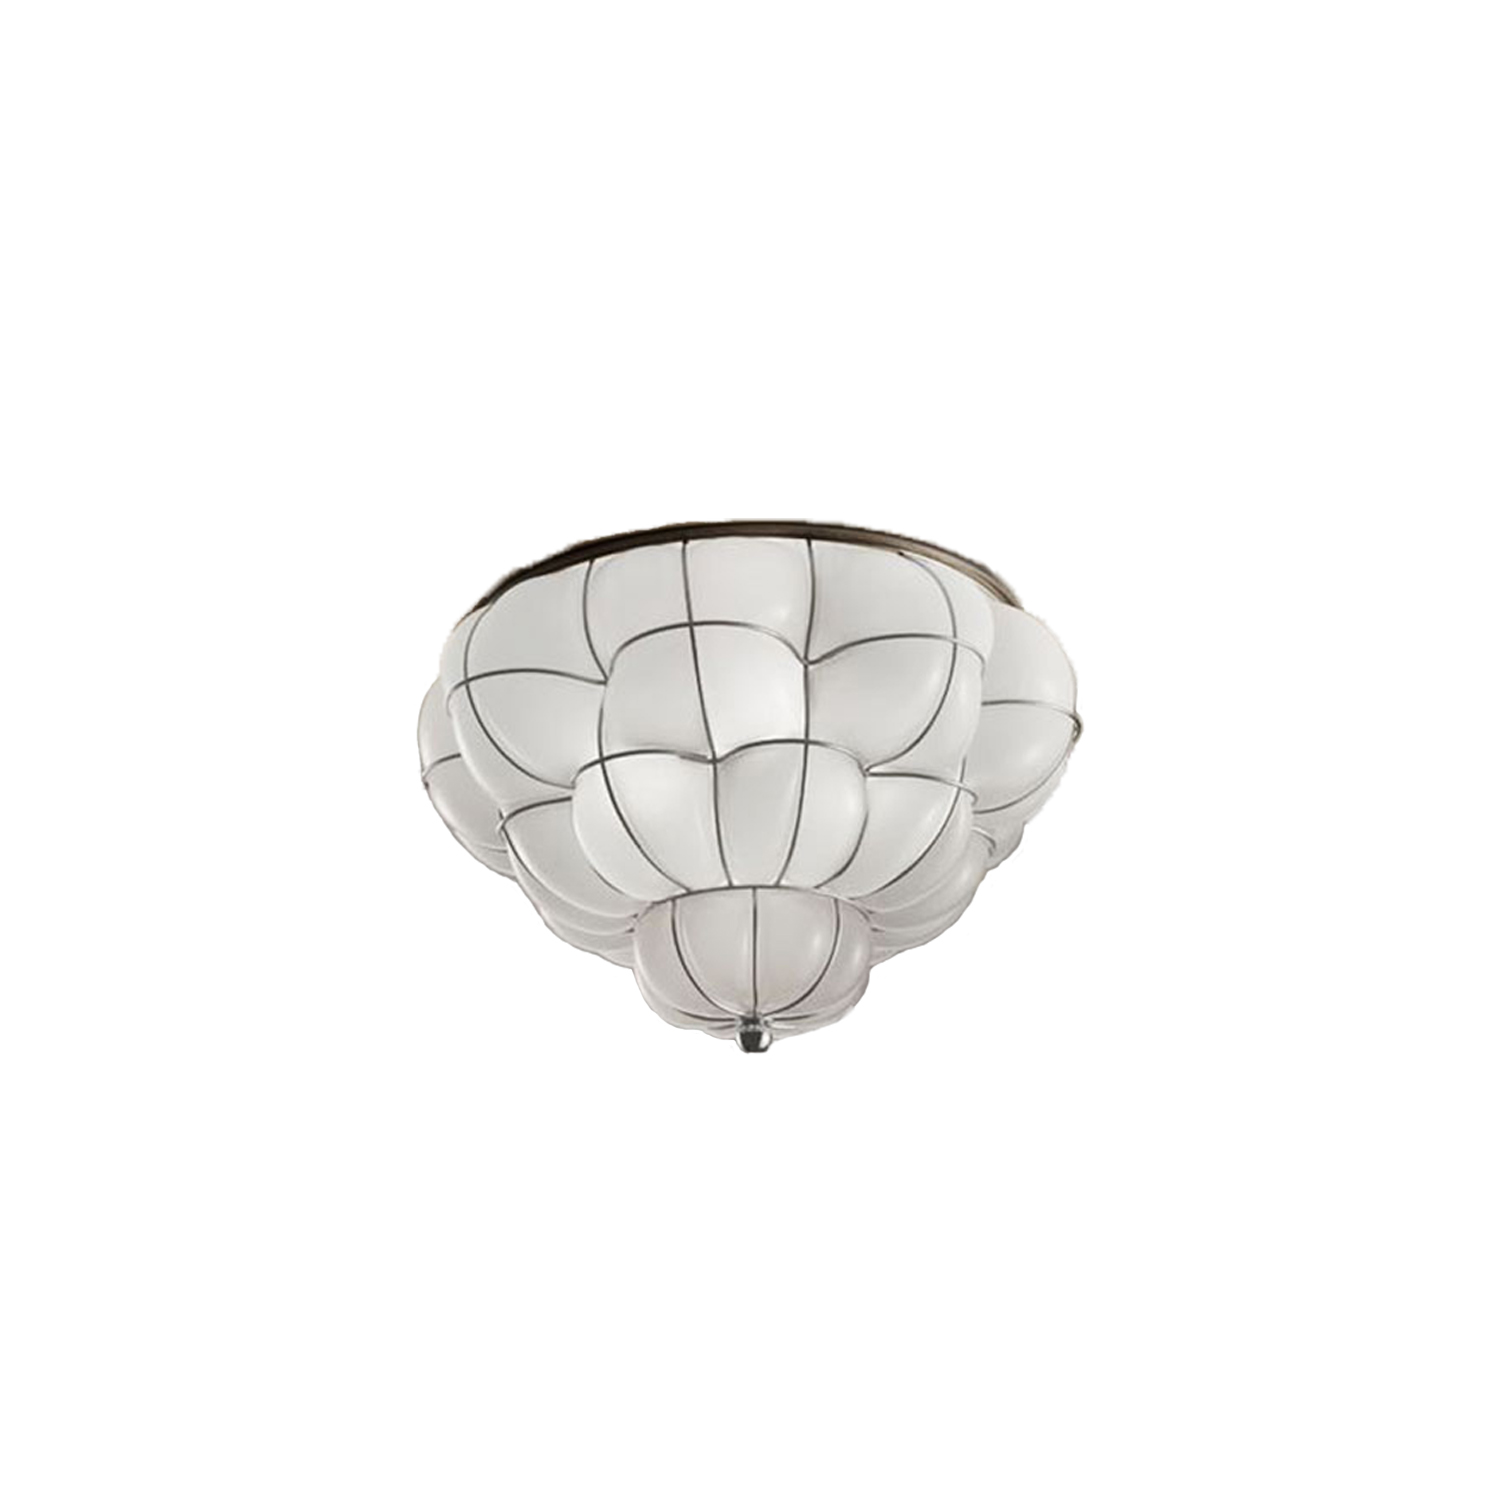 Pouff Ceiling Light - The Pouff Ceiling Light is similar to the Pouff Pendant Light with it's organic and natural form. It suits almost any room and adds a splash of personality with its modern twist on a traditional ceiling light. The Pouff Ceiling Light is hand made blown glass with suspension techniques of the old Murano glass masters.This light comes in three different finishes: Smooth Milk White, Interior Satin Amber and Antique Satin Crystal. 